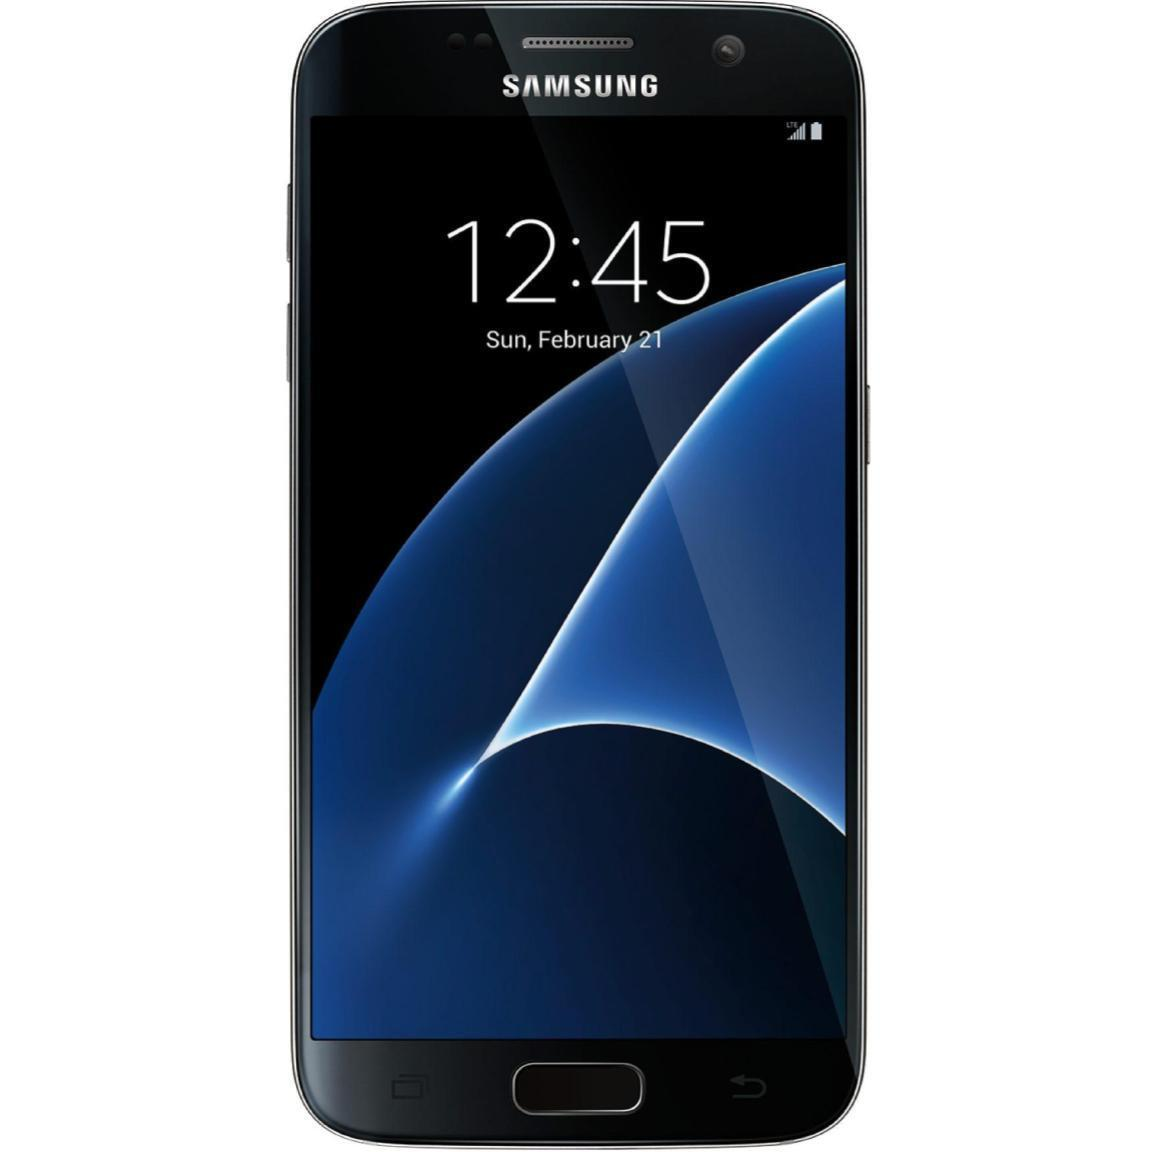 Samsung Galaxy S7 - 32GB - Black (GSM Unlocked AT&T / T-Mobile) Smartphone